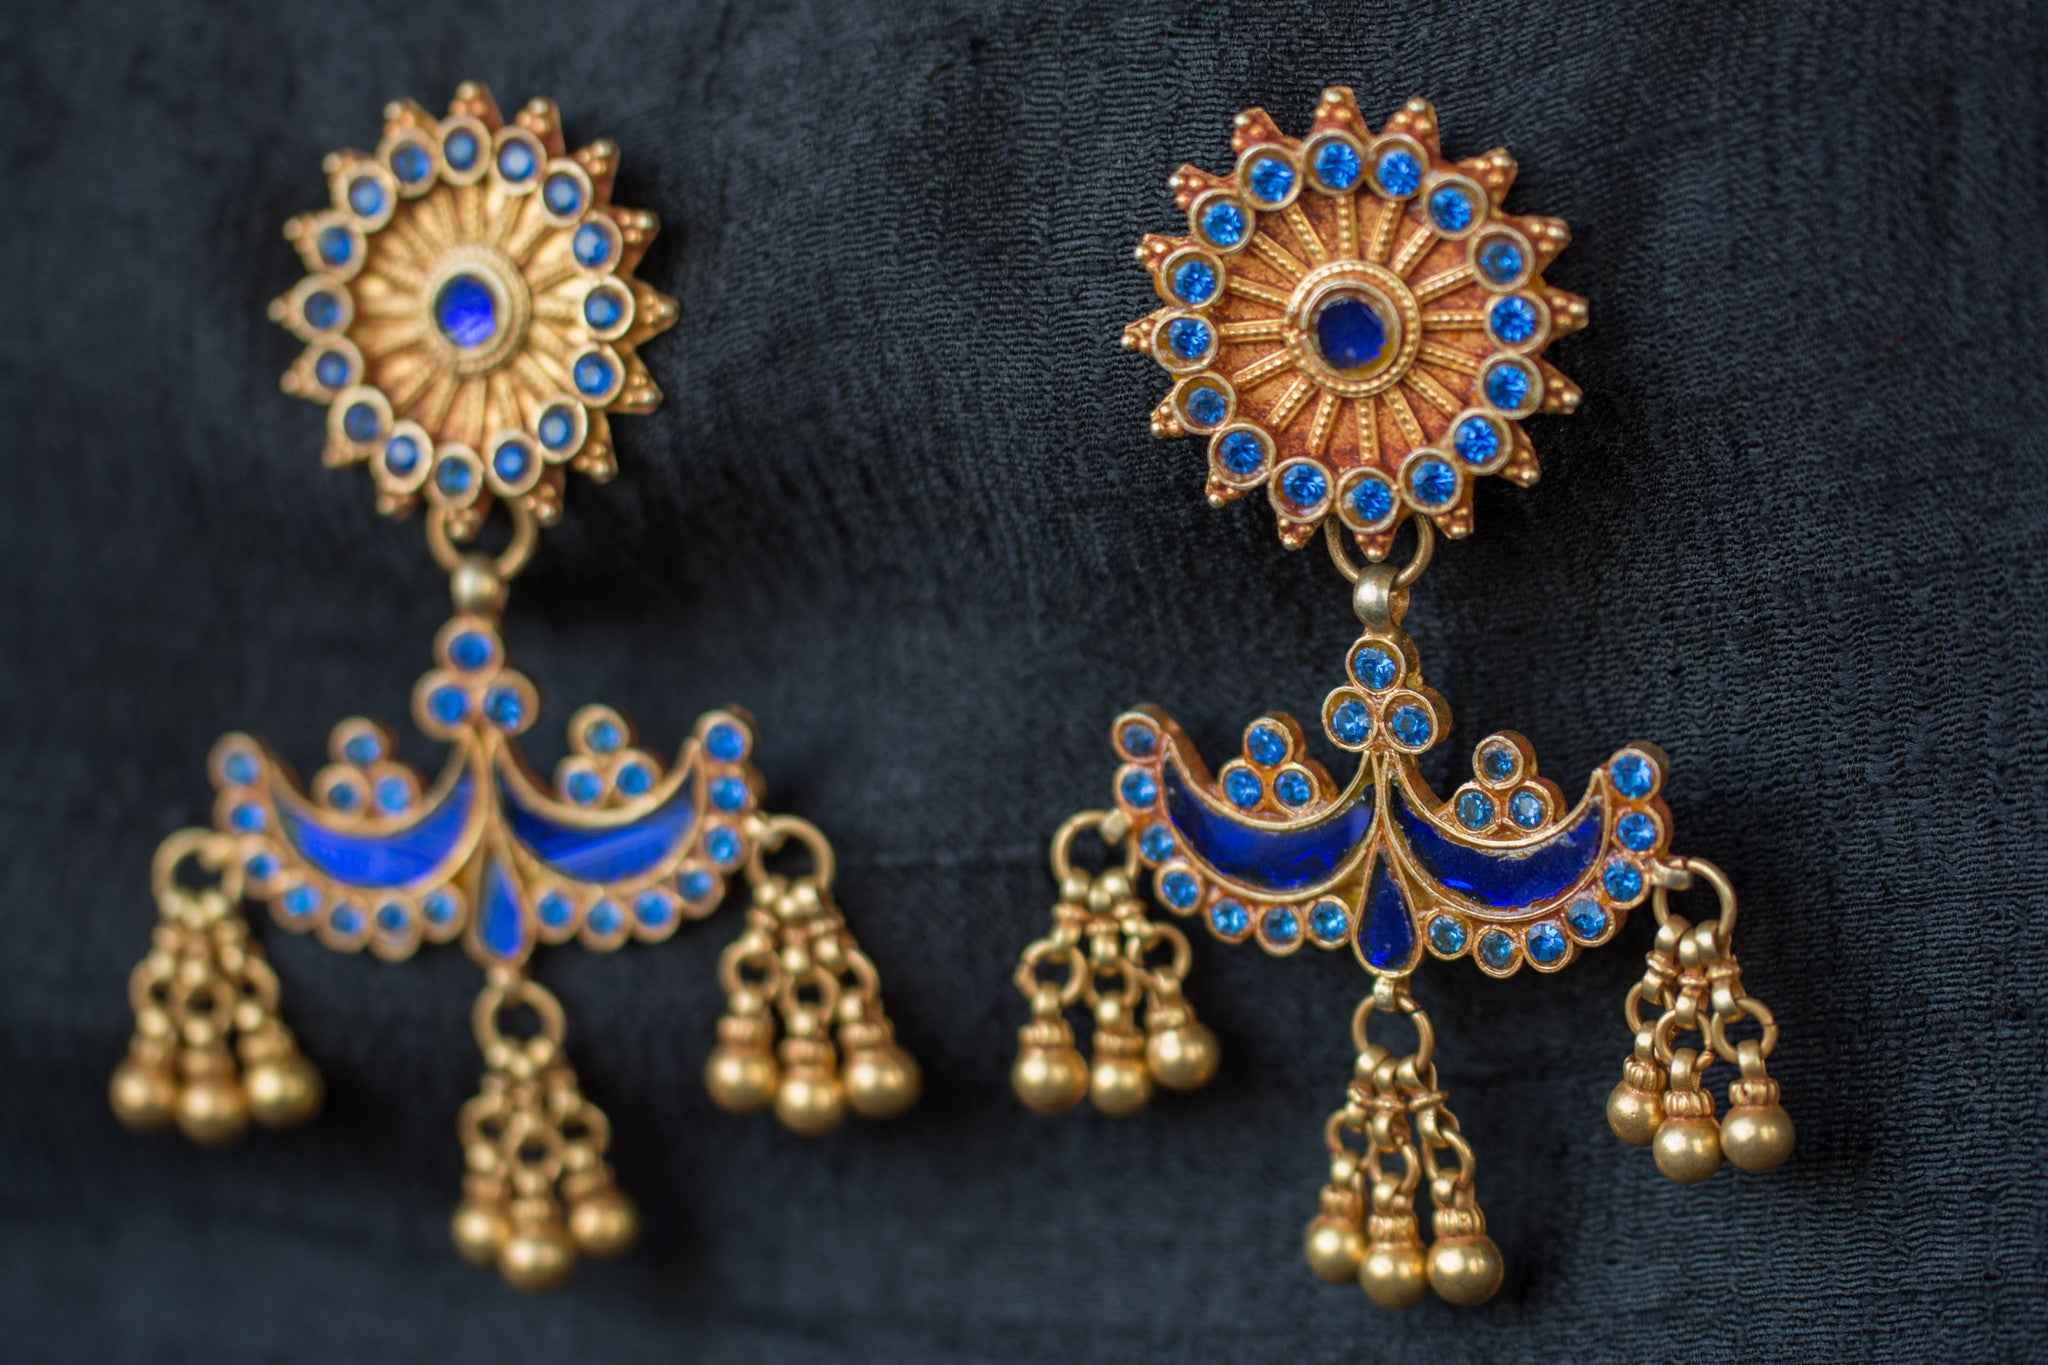 20A498 Silver Gold Plated Amrapali Earrings with Blue Glass and Bead